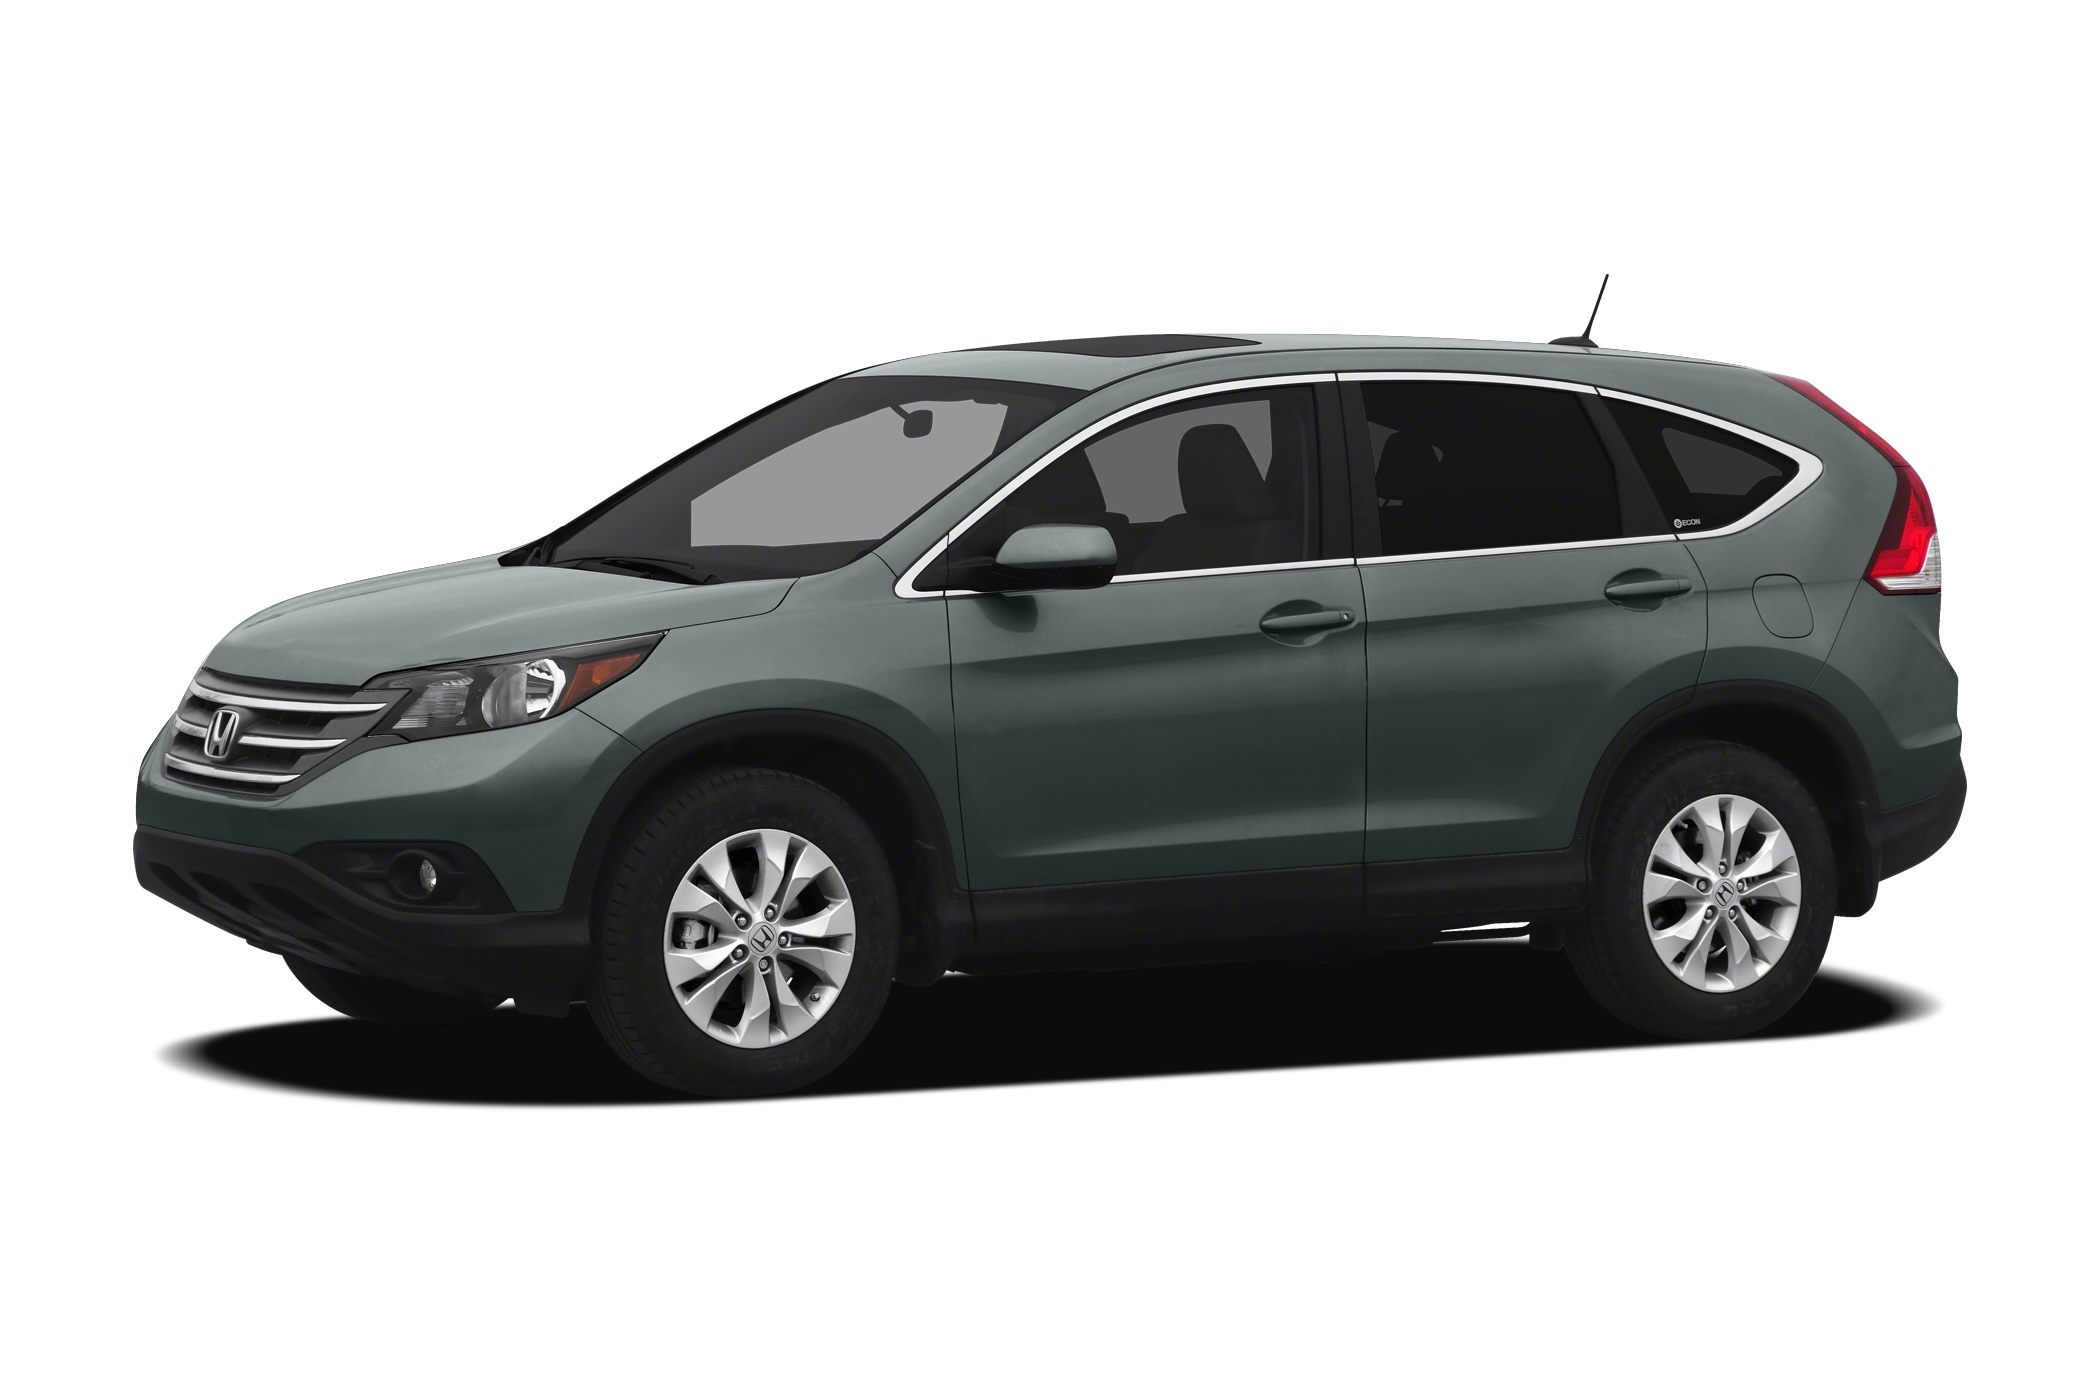 2012 Honda CR-V EX-L SUV for sale in Annandale for $22,573 with 54,668 miles